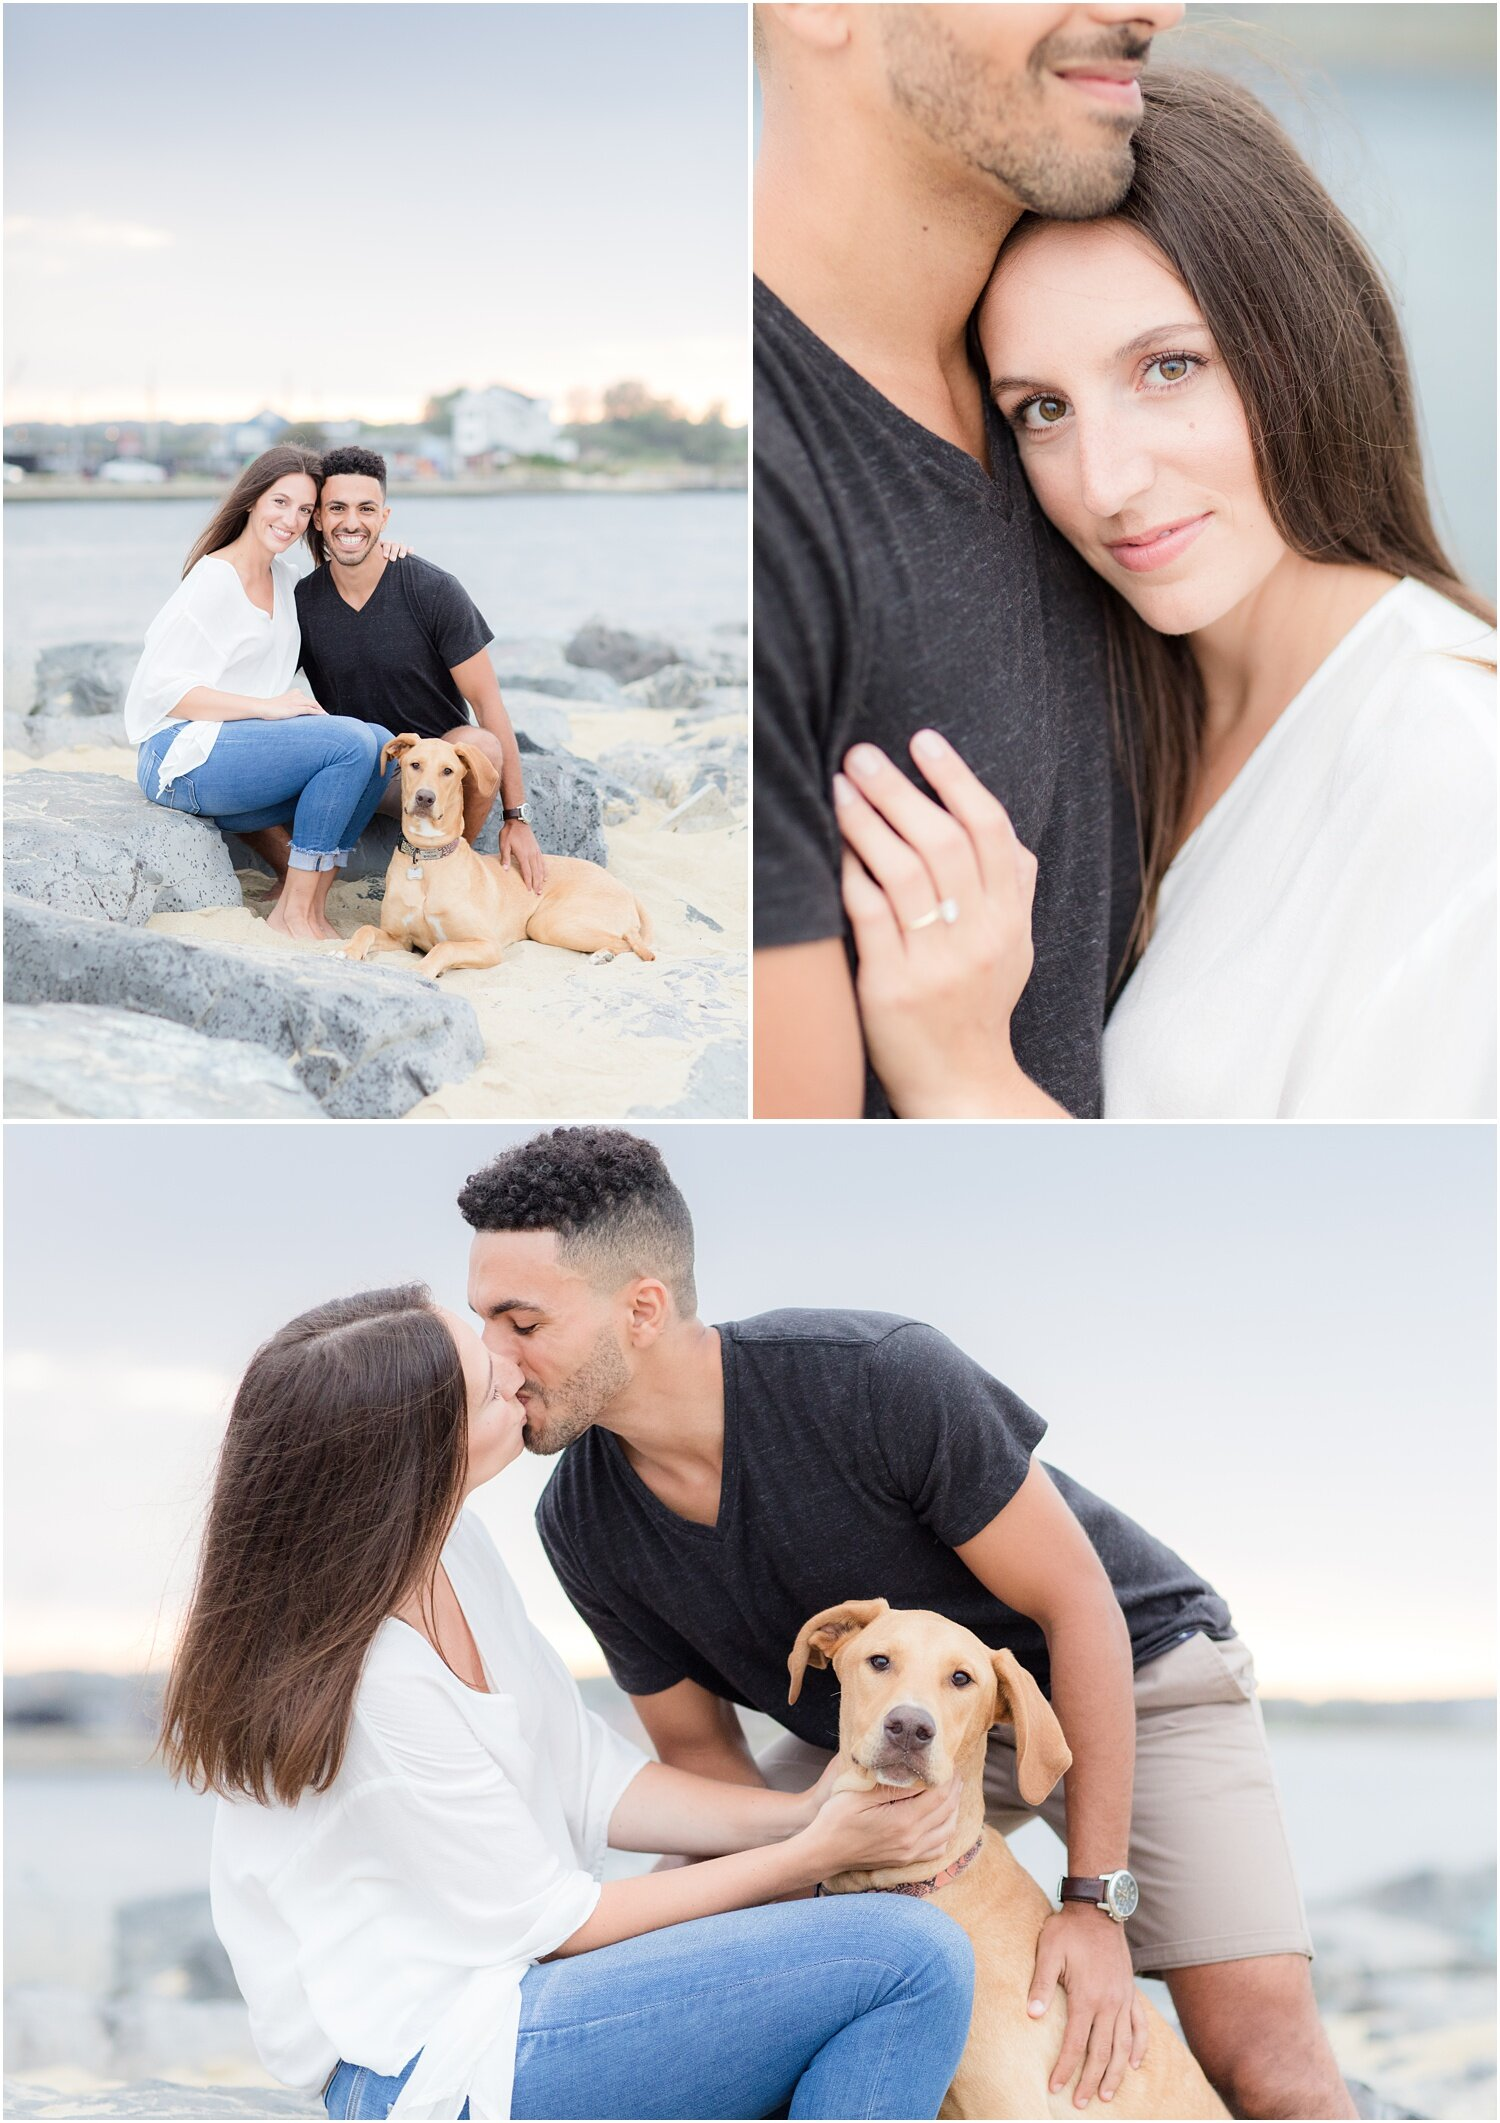 Beach engagement photos with a dog in Manasquan, NJ.